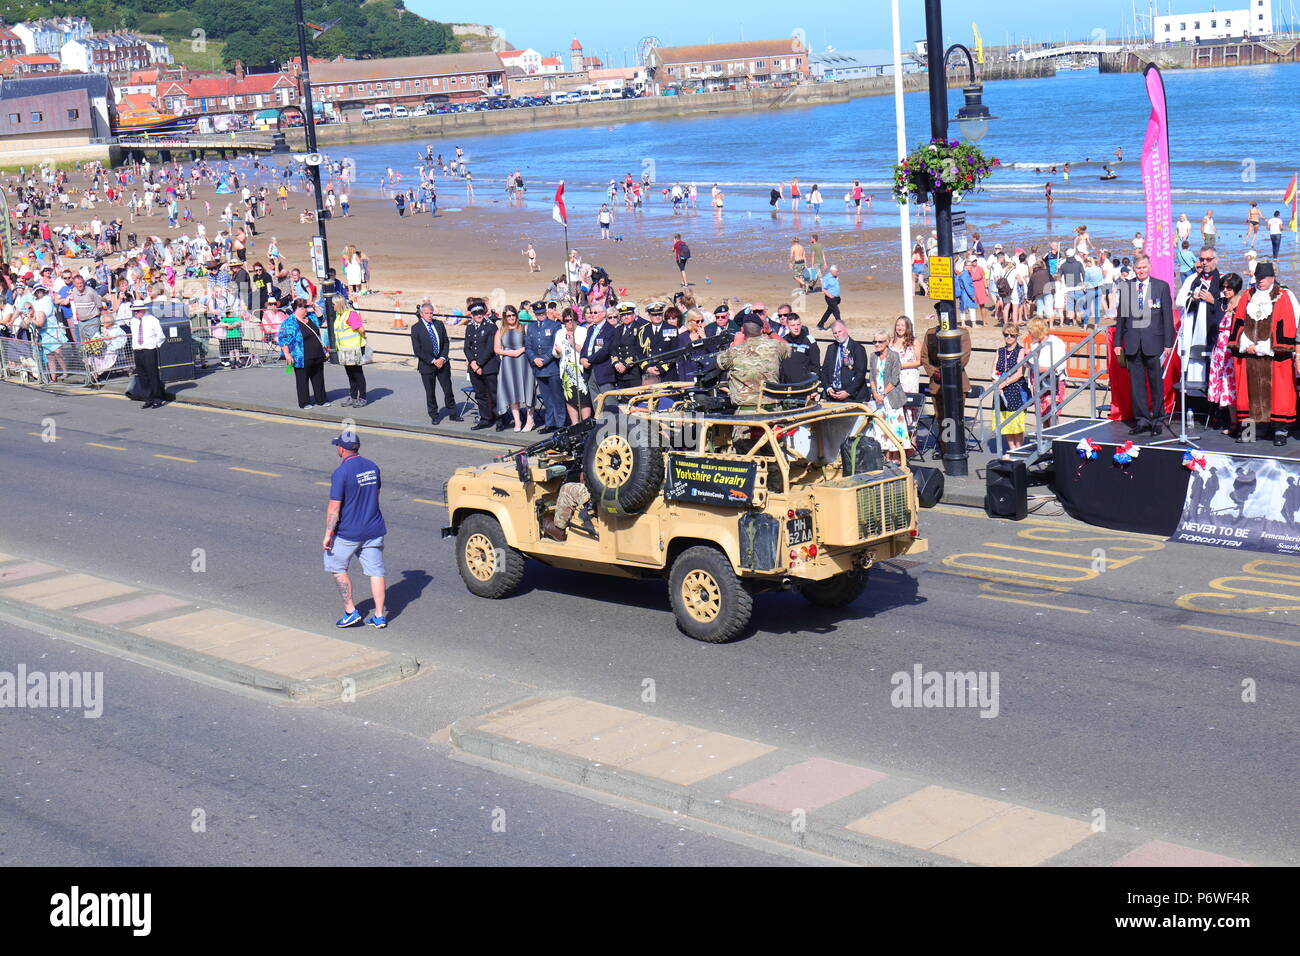 Parades taking place at Scarborough Armed Forces Day - Stock Image